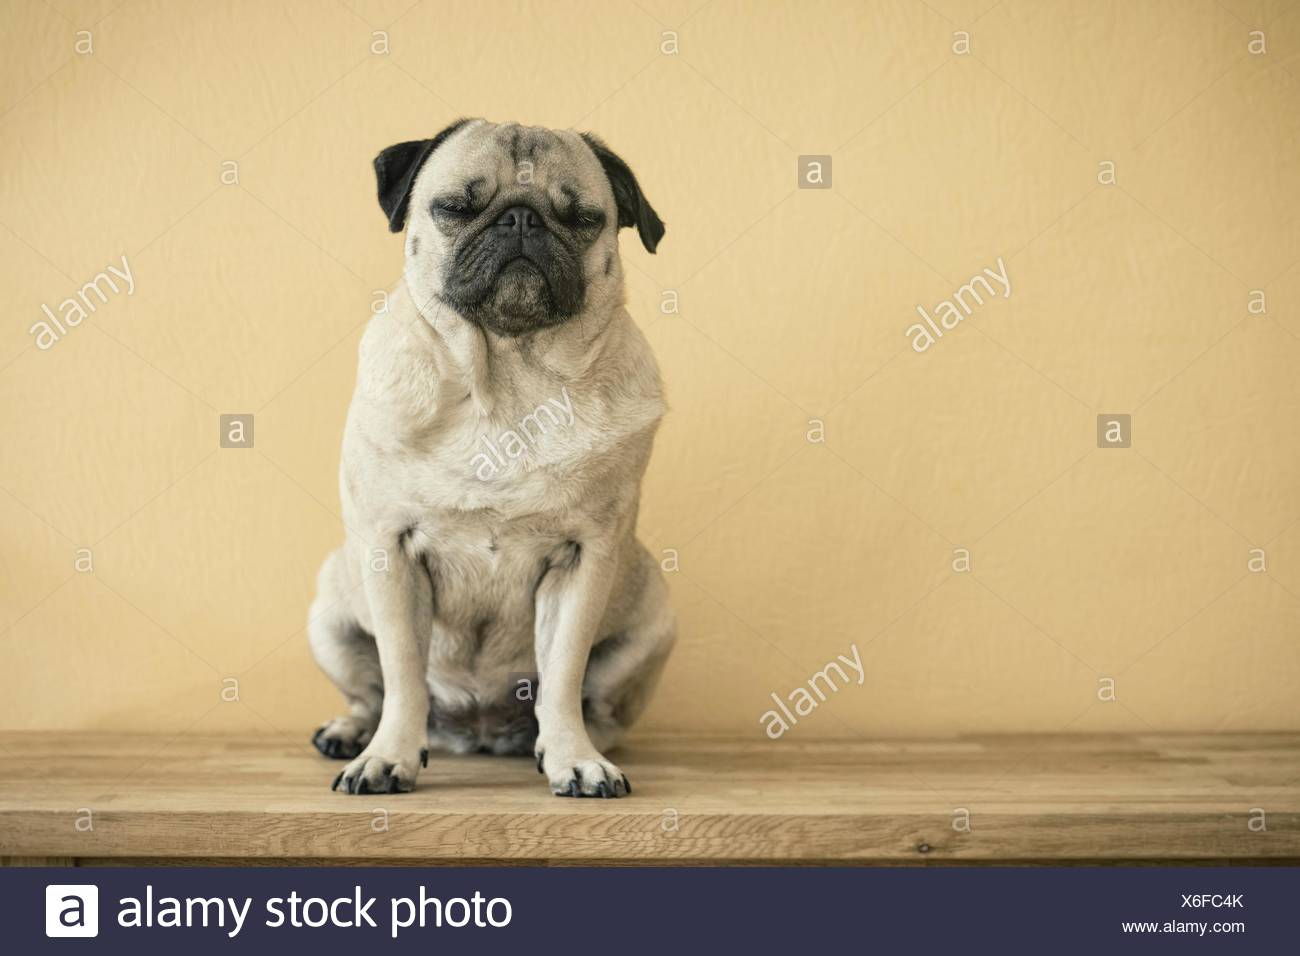 Pug dog sitting with closed eyes on a wooden bench - Stock Image